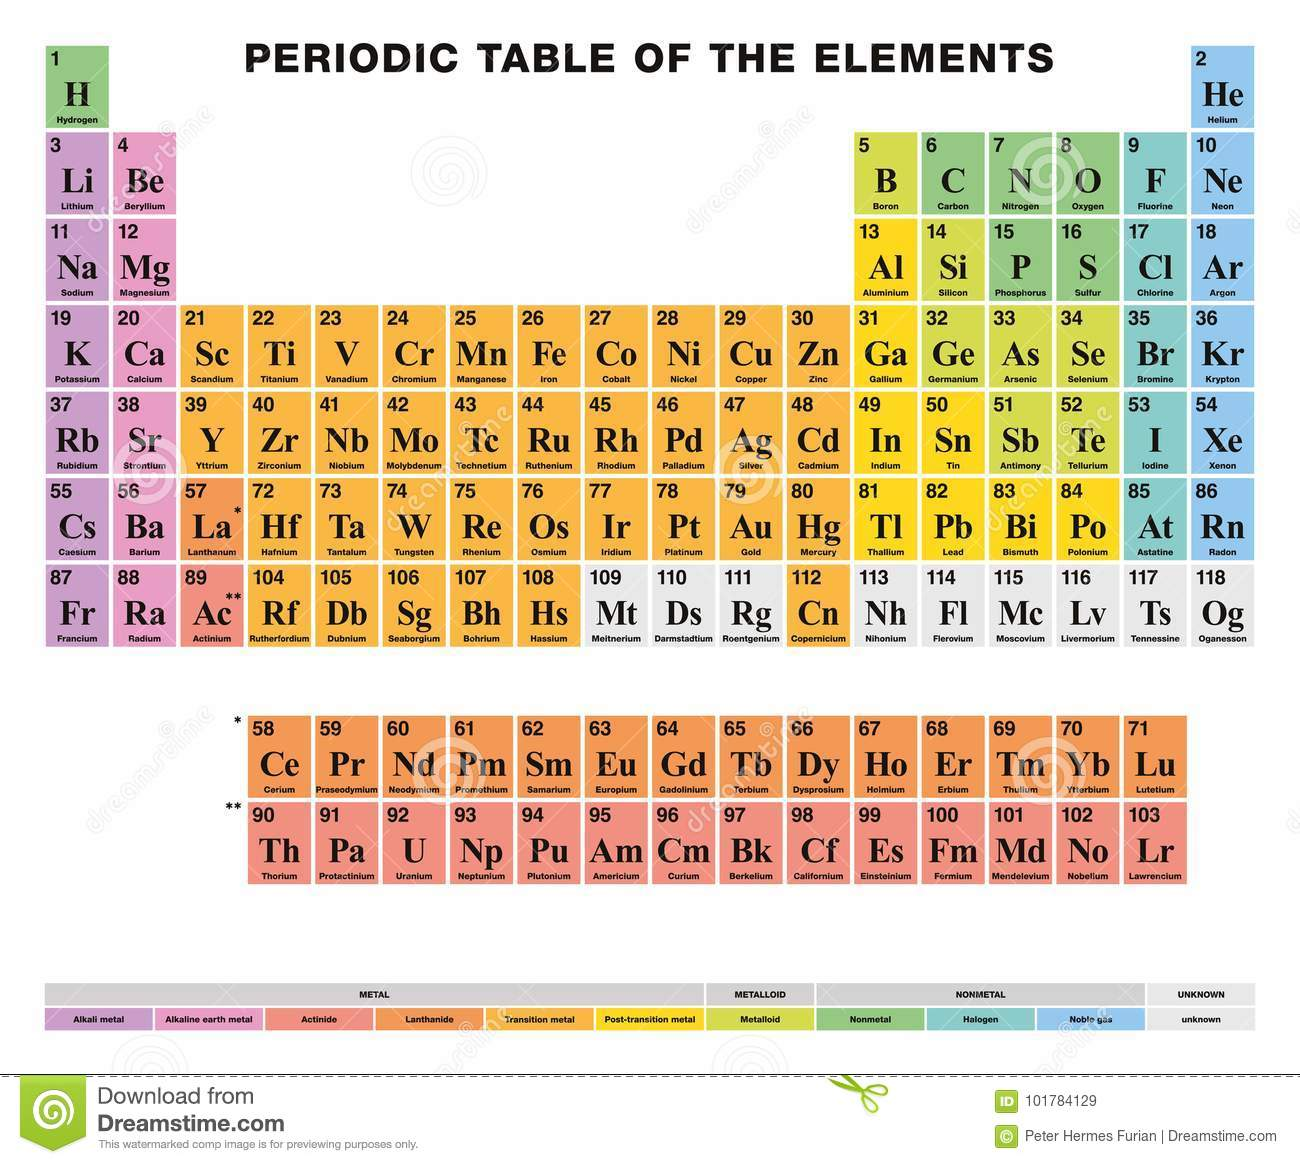 Periodic table of the elements english labeling colored cells stock periodic table of the elements english labeling colored cells urtaz Images